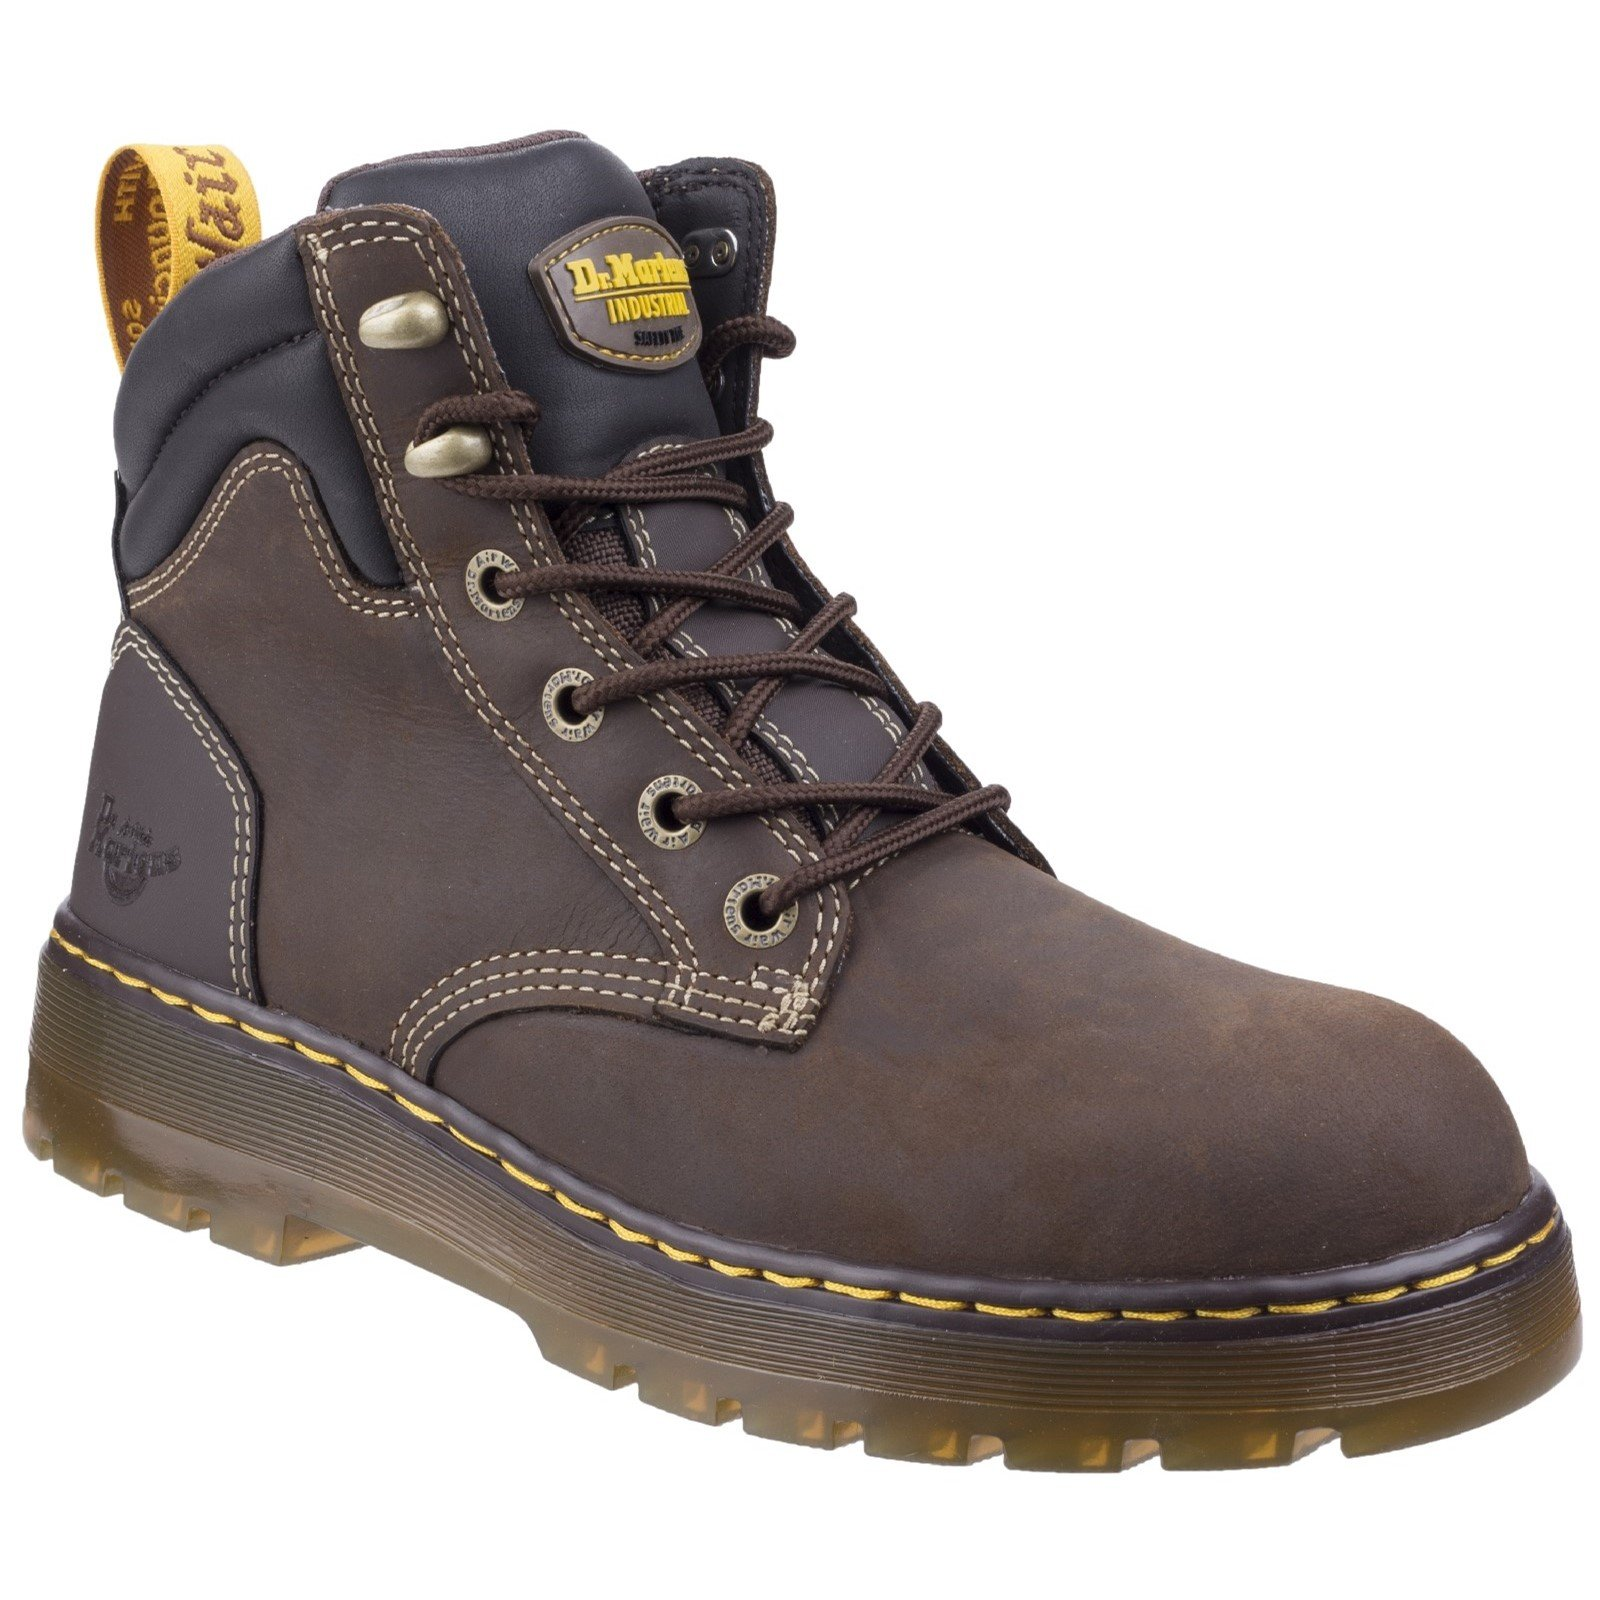 Dr Martens Unisex Brace Hiking Style Safety Boot Various Colours 27702-46606 - Dark Brown Republic 13